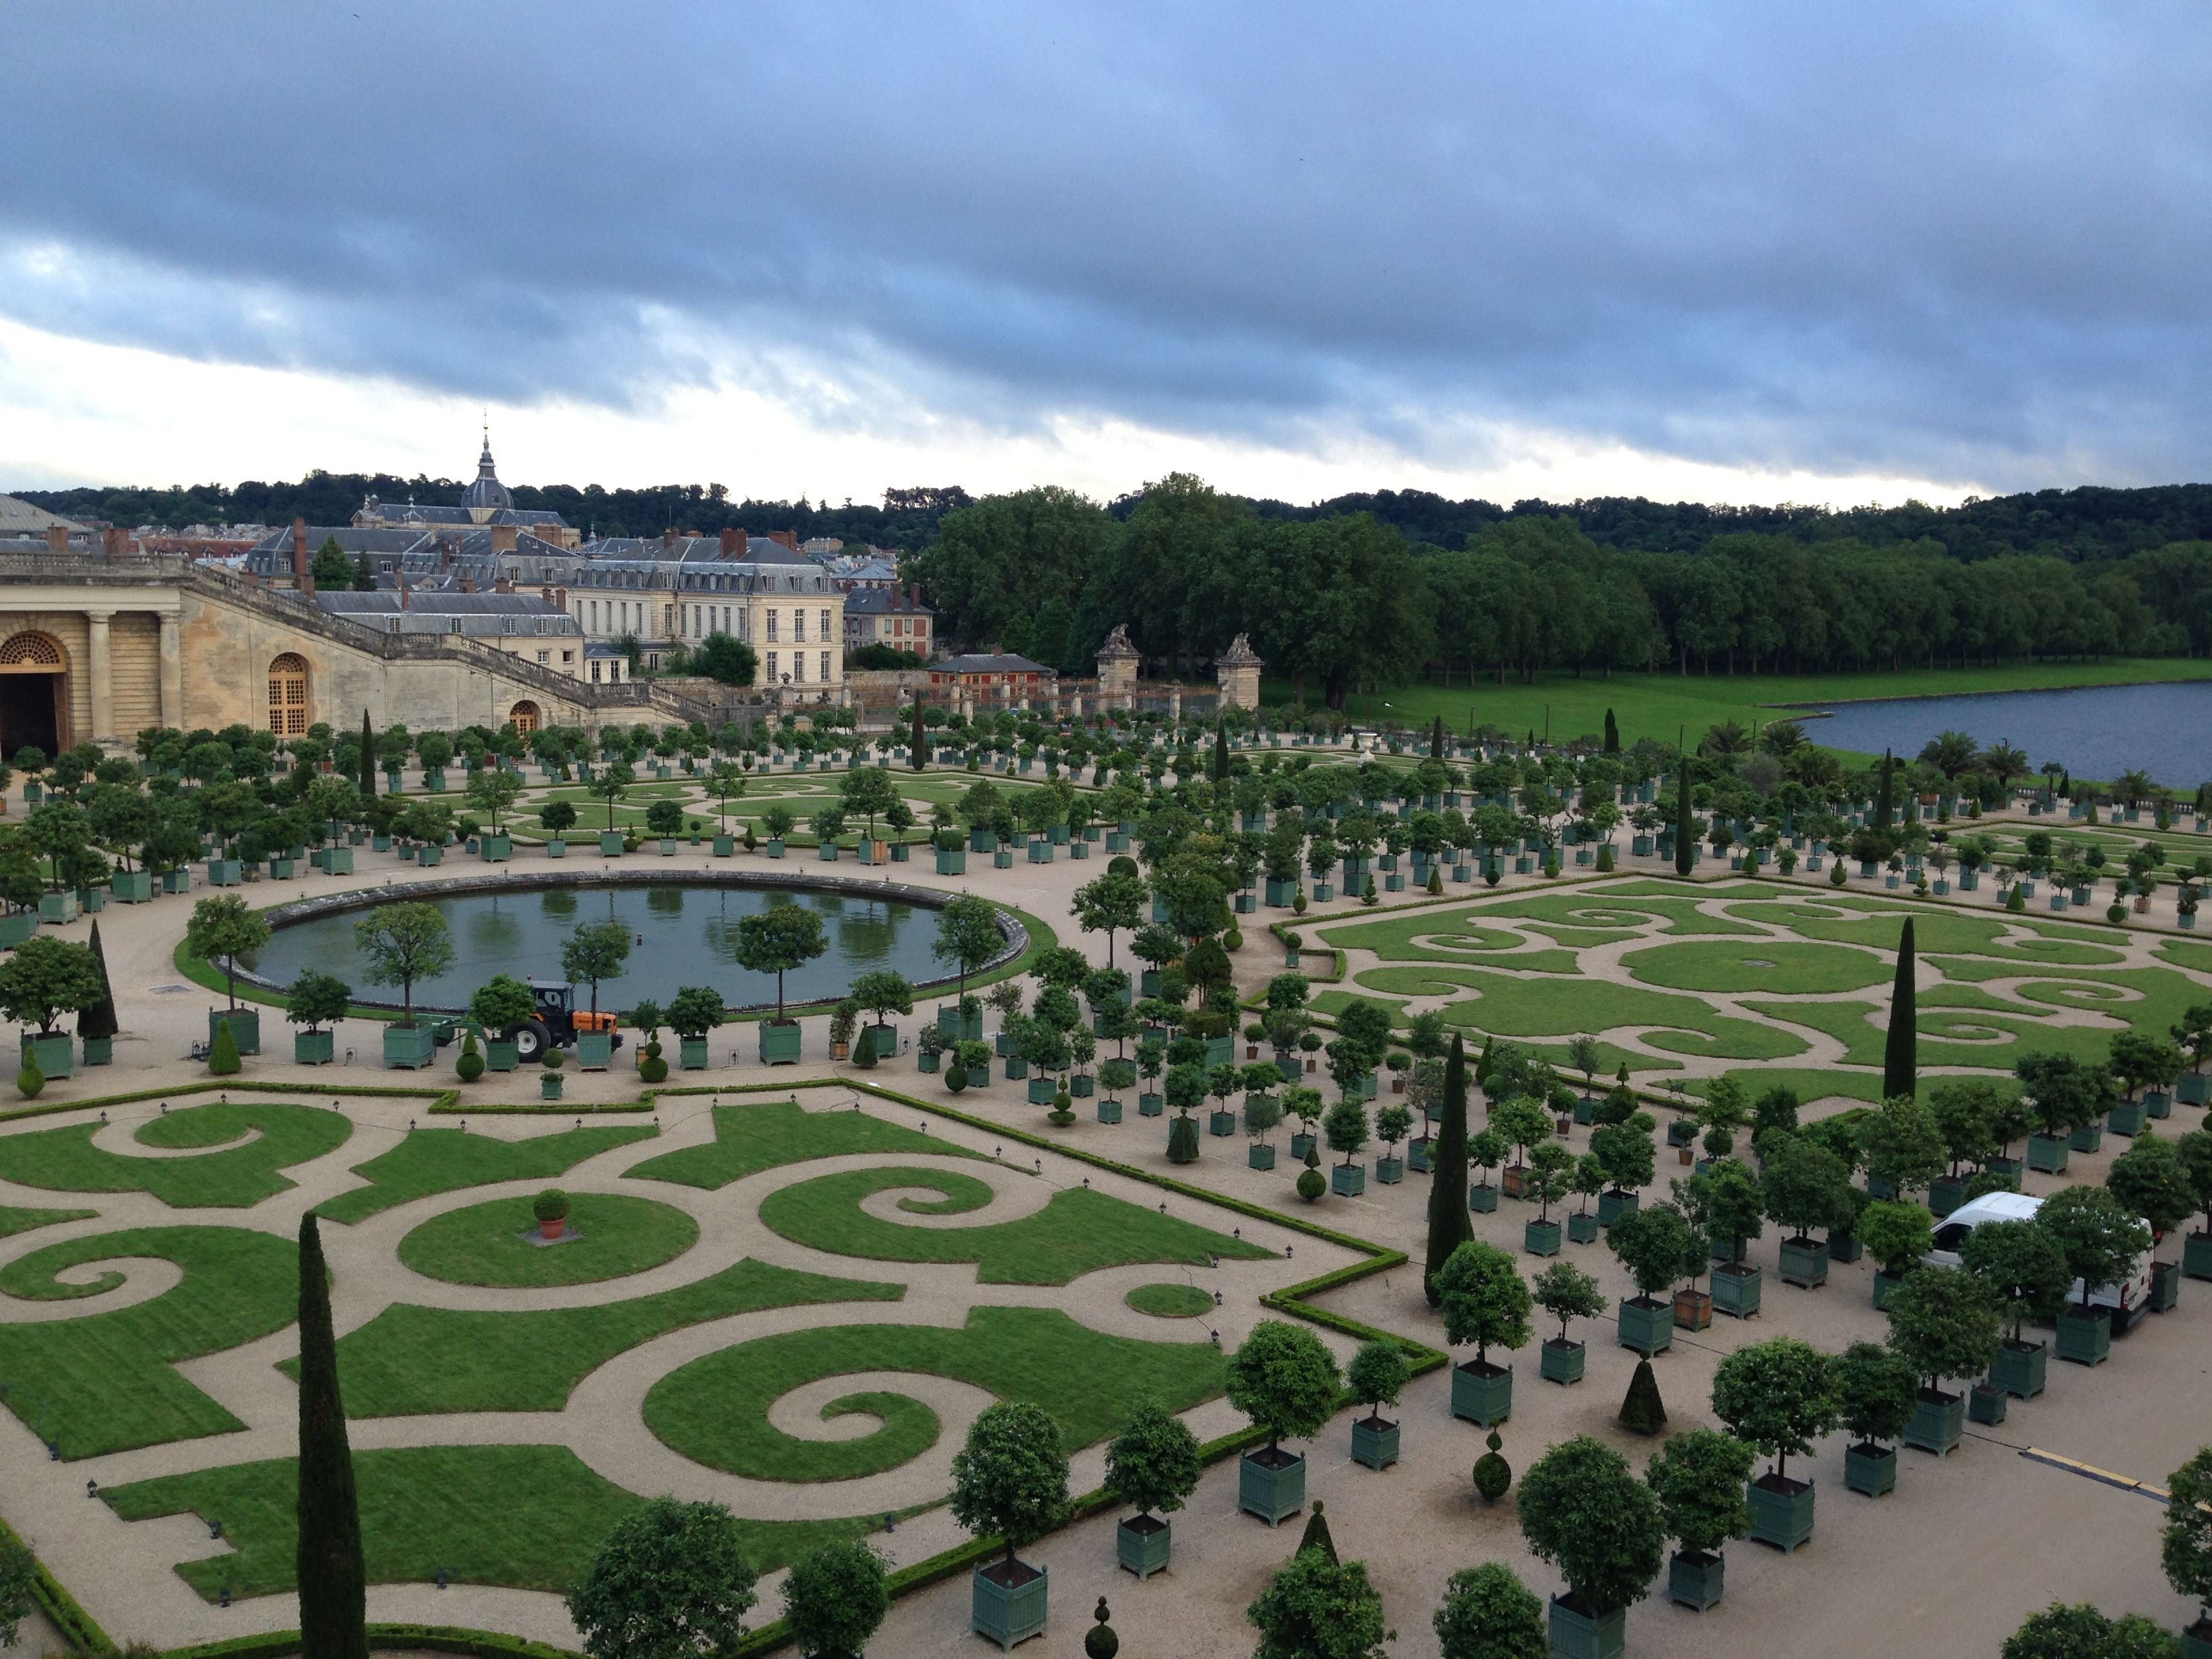 Pin By Saralyn Smith On Keystone Memories Versailles Garden Places To Travel Places To Visit